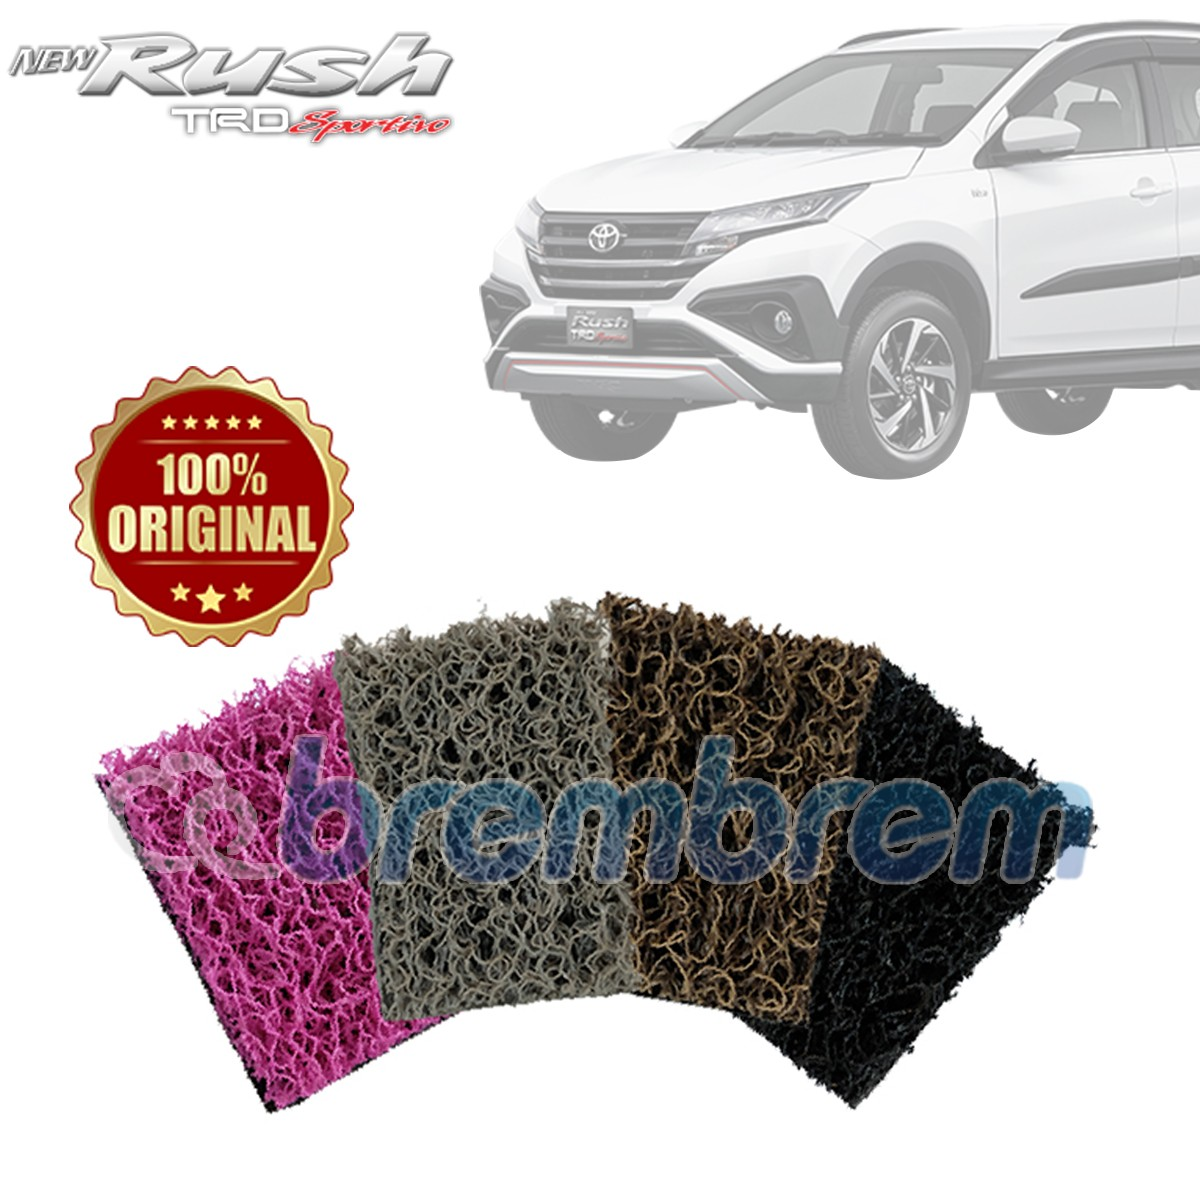 KARPET COMFORT DELUXE + BAGASI TOYOTA ALL NEW RUSH 2018